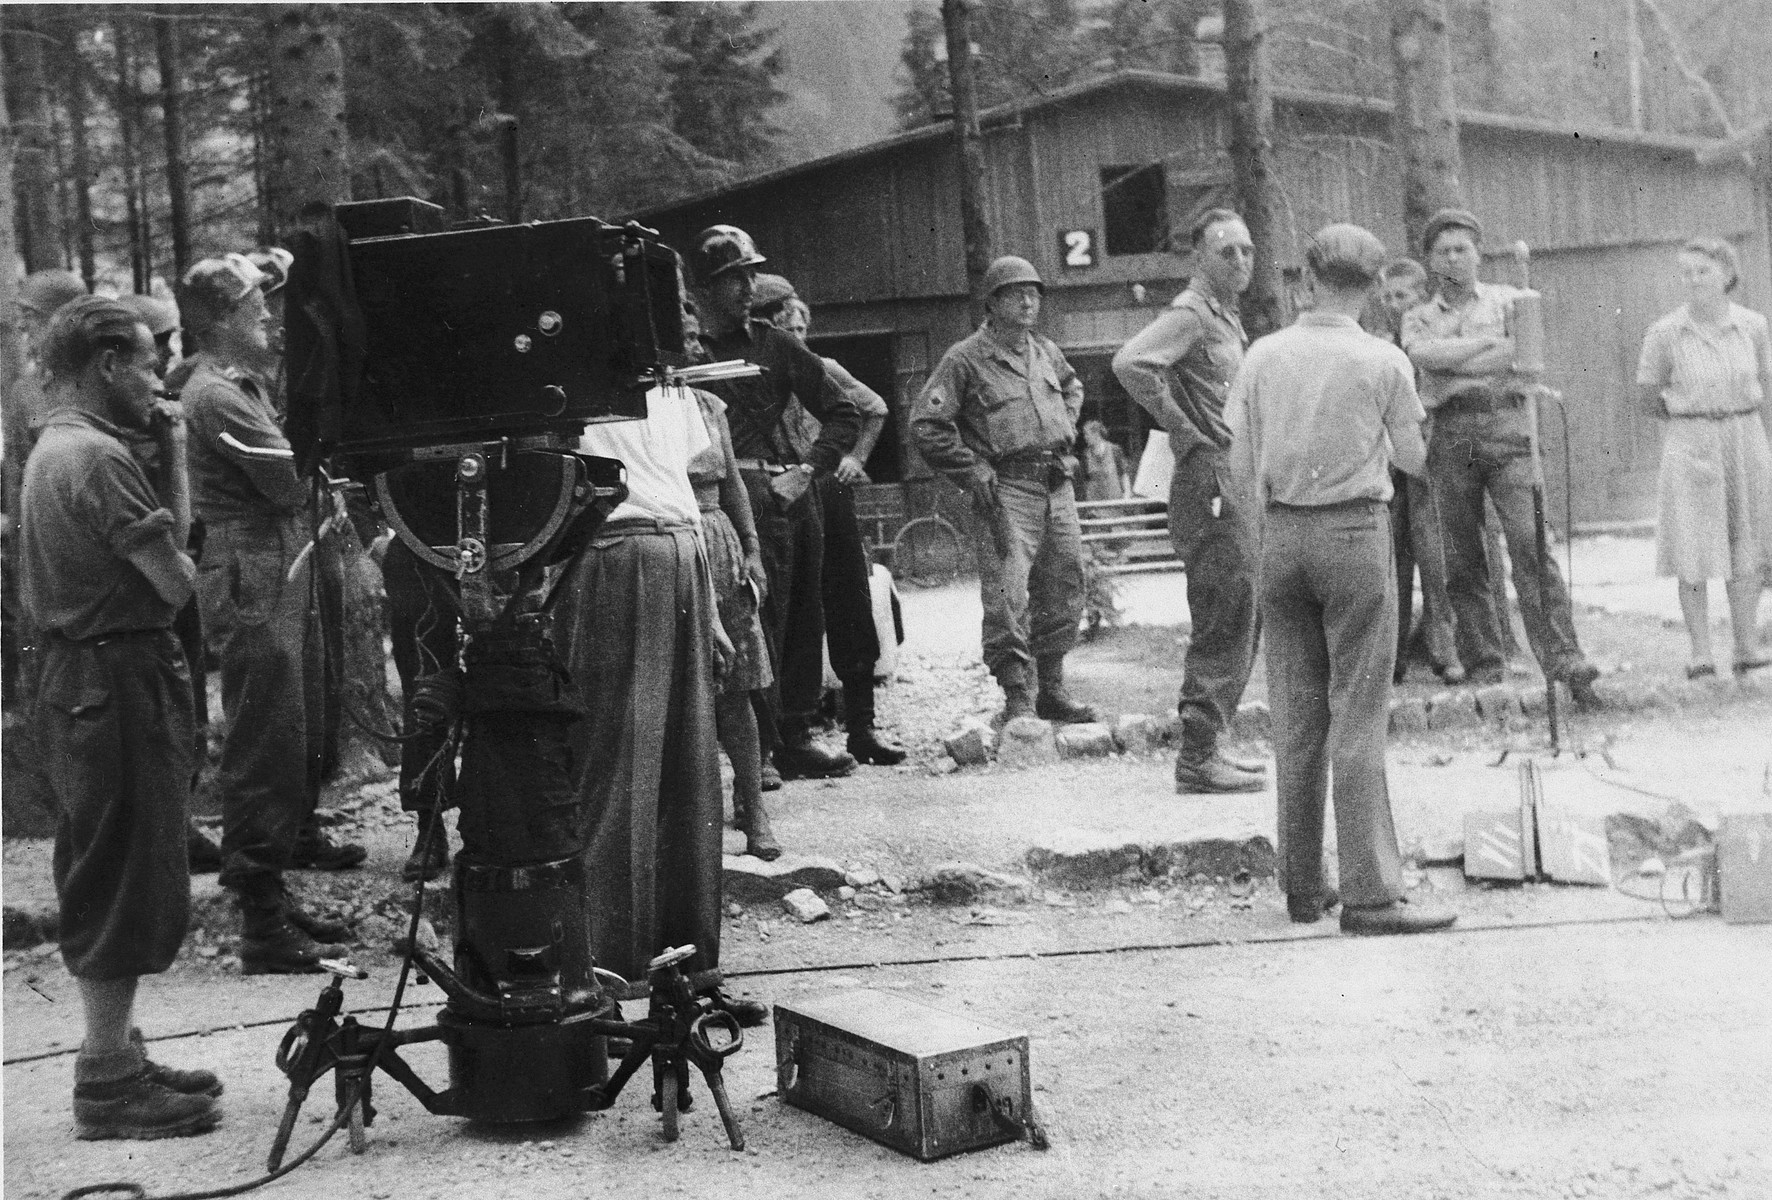 """American servicemen gather documentary evidence of the crimes committed in the Ebensee concentration camp.  The original caption reads: """"Gathering pictures, records, etc. from the displaced persons against the S.S. that ran the camp."""""""